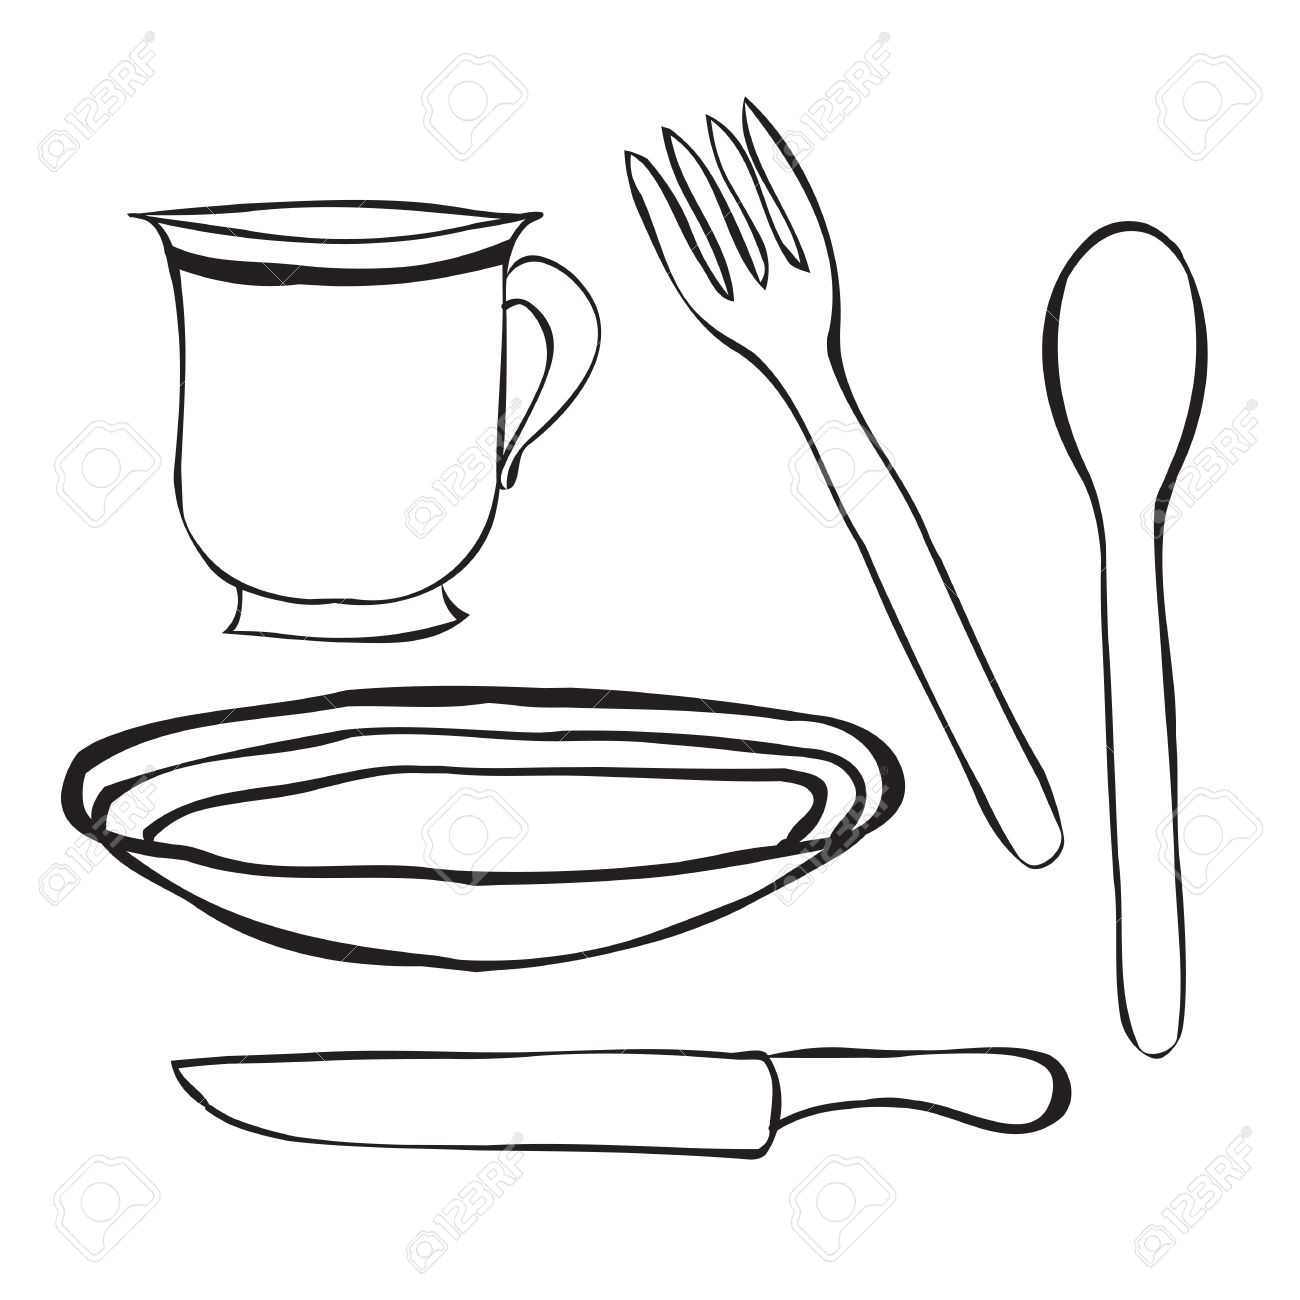 Cartoon kitchen table - Cartoon Plate And Table Jpg 1300x1300 Cartoon Kitchen Table Setting